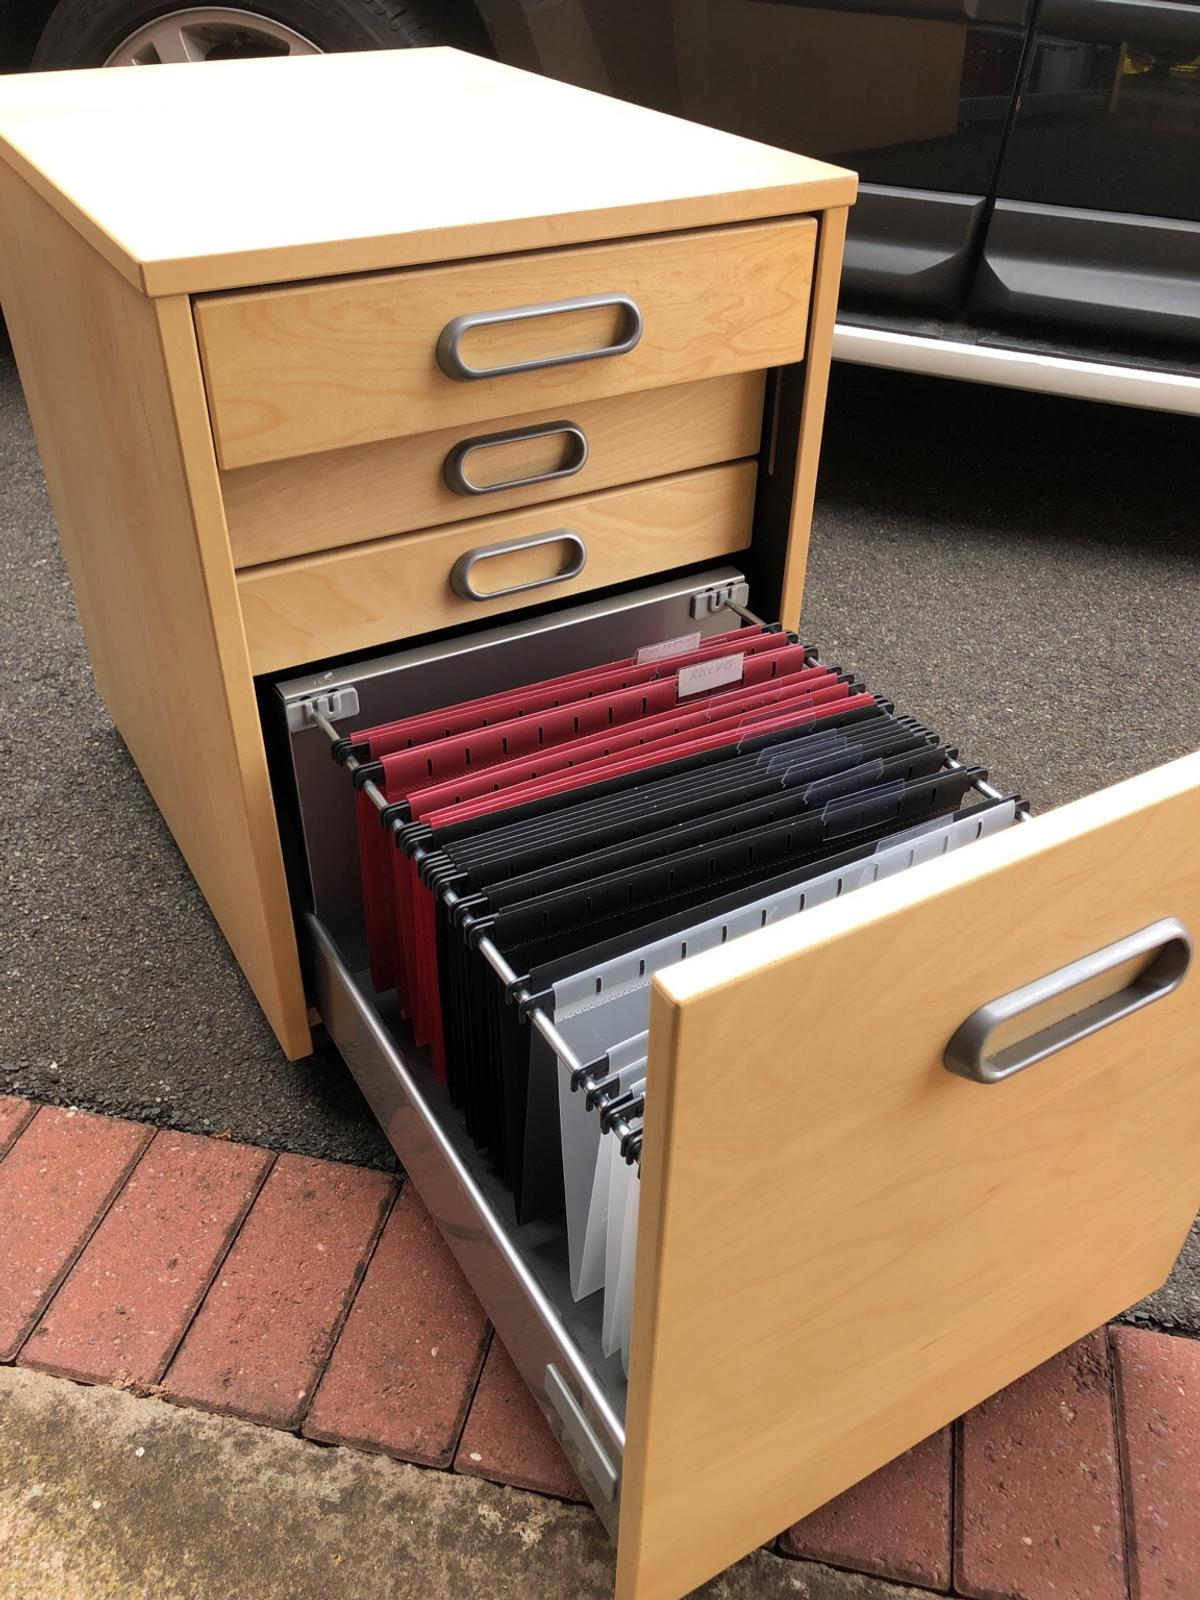 Magnificent Ikea Galant Birch Filing Cabinet In Dy6 Dudley For 40 00 Download Free Architecture Designs Xaembritishbridgeorg